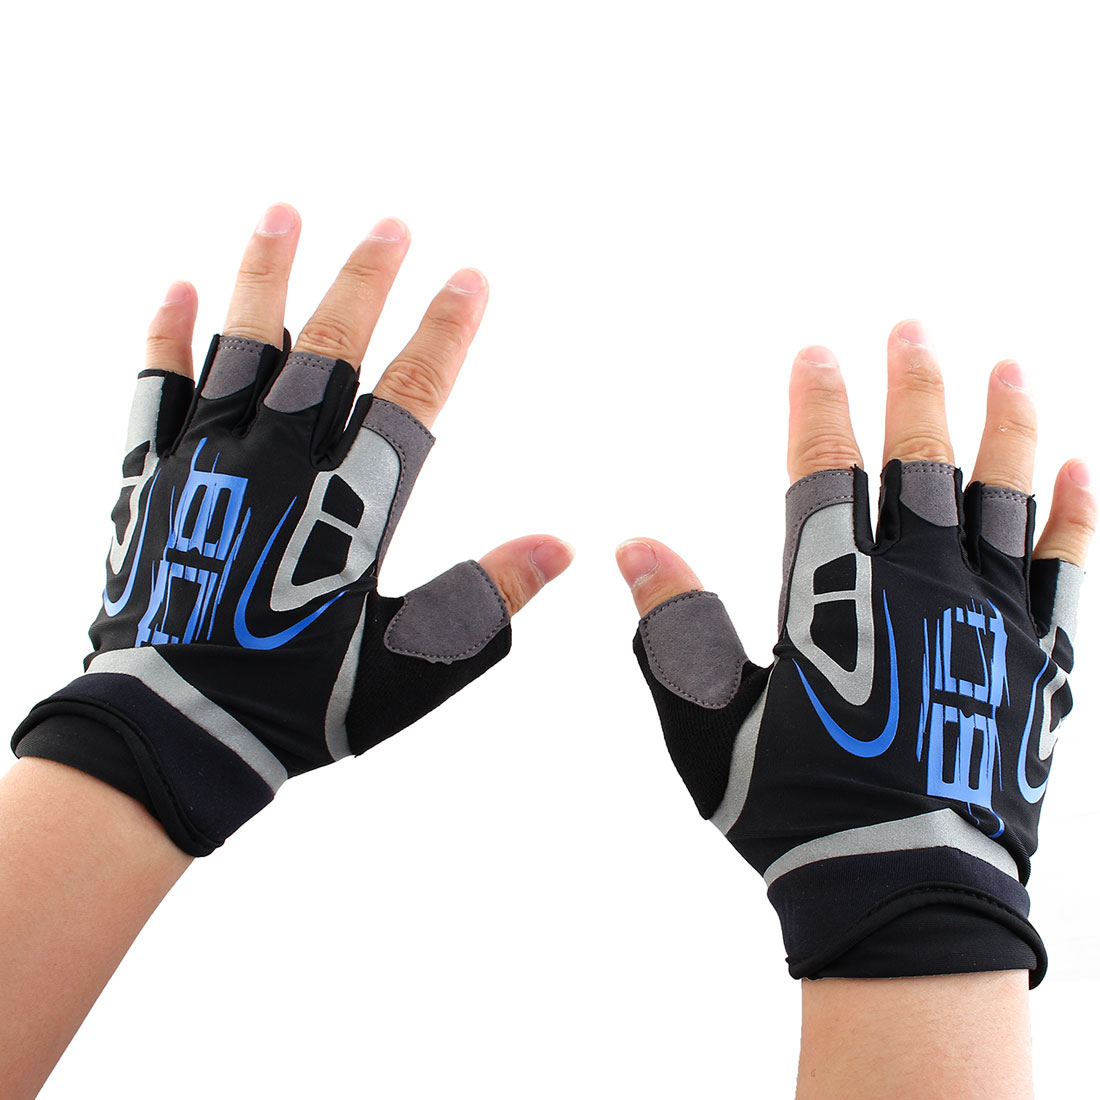 Boodun Authorized Outdoor Sports Cycling Gym Workout Training Exercise Weight Lifting Non-slip Half Finger Gloves Blue Size XL Pair